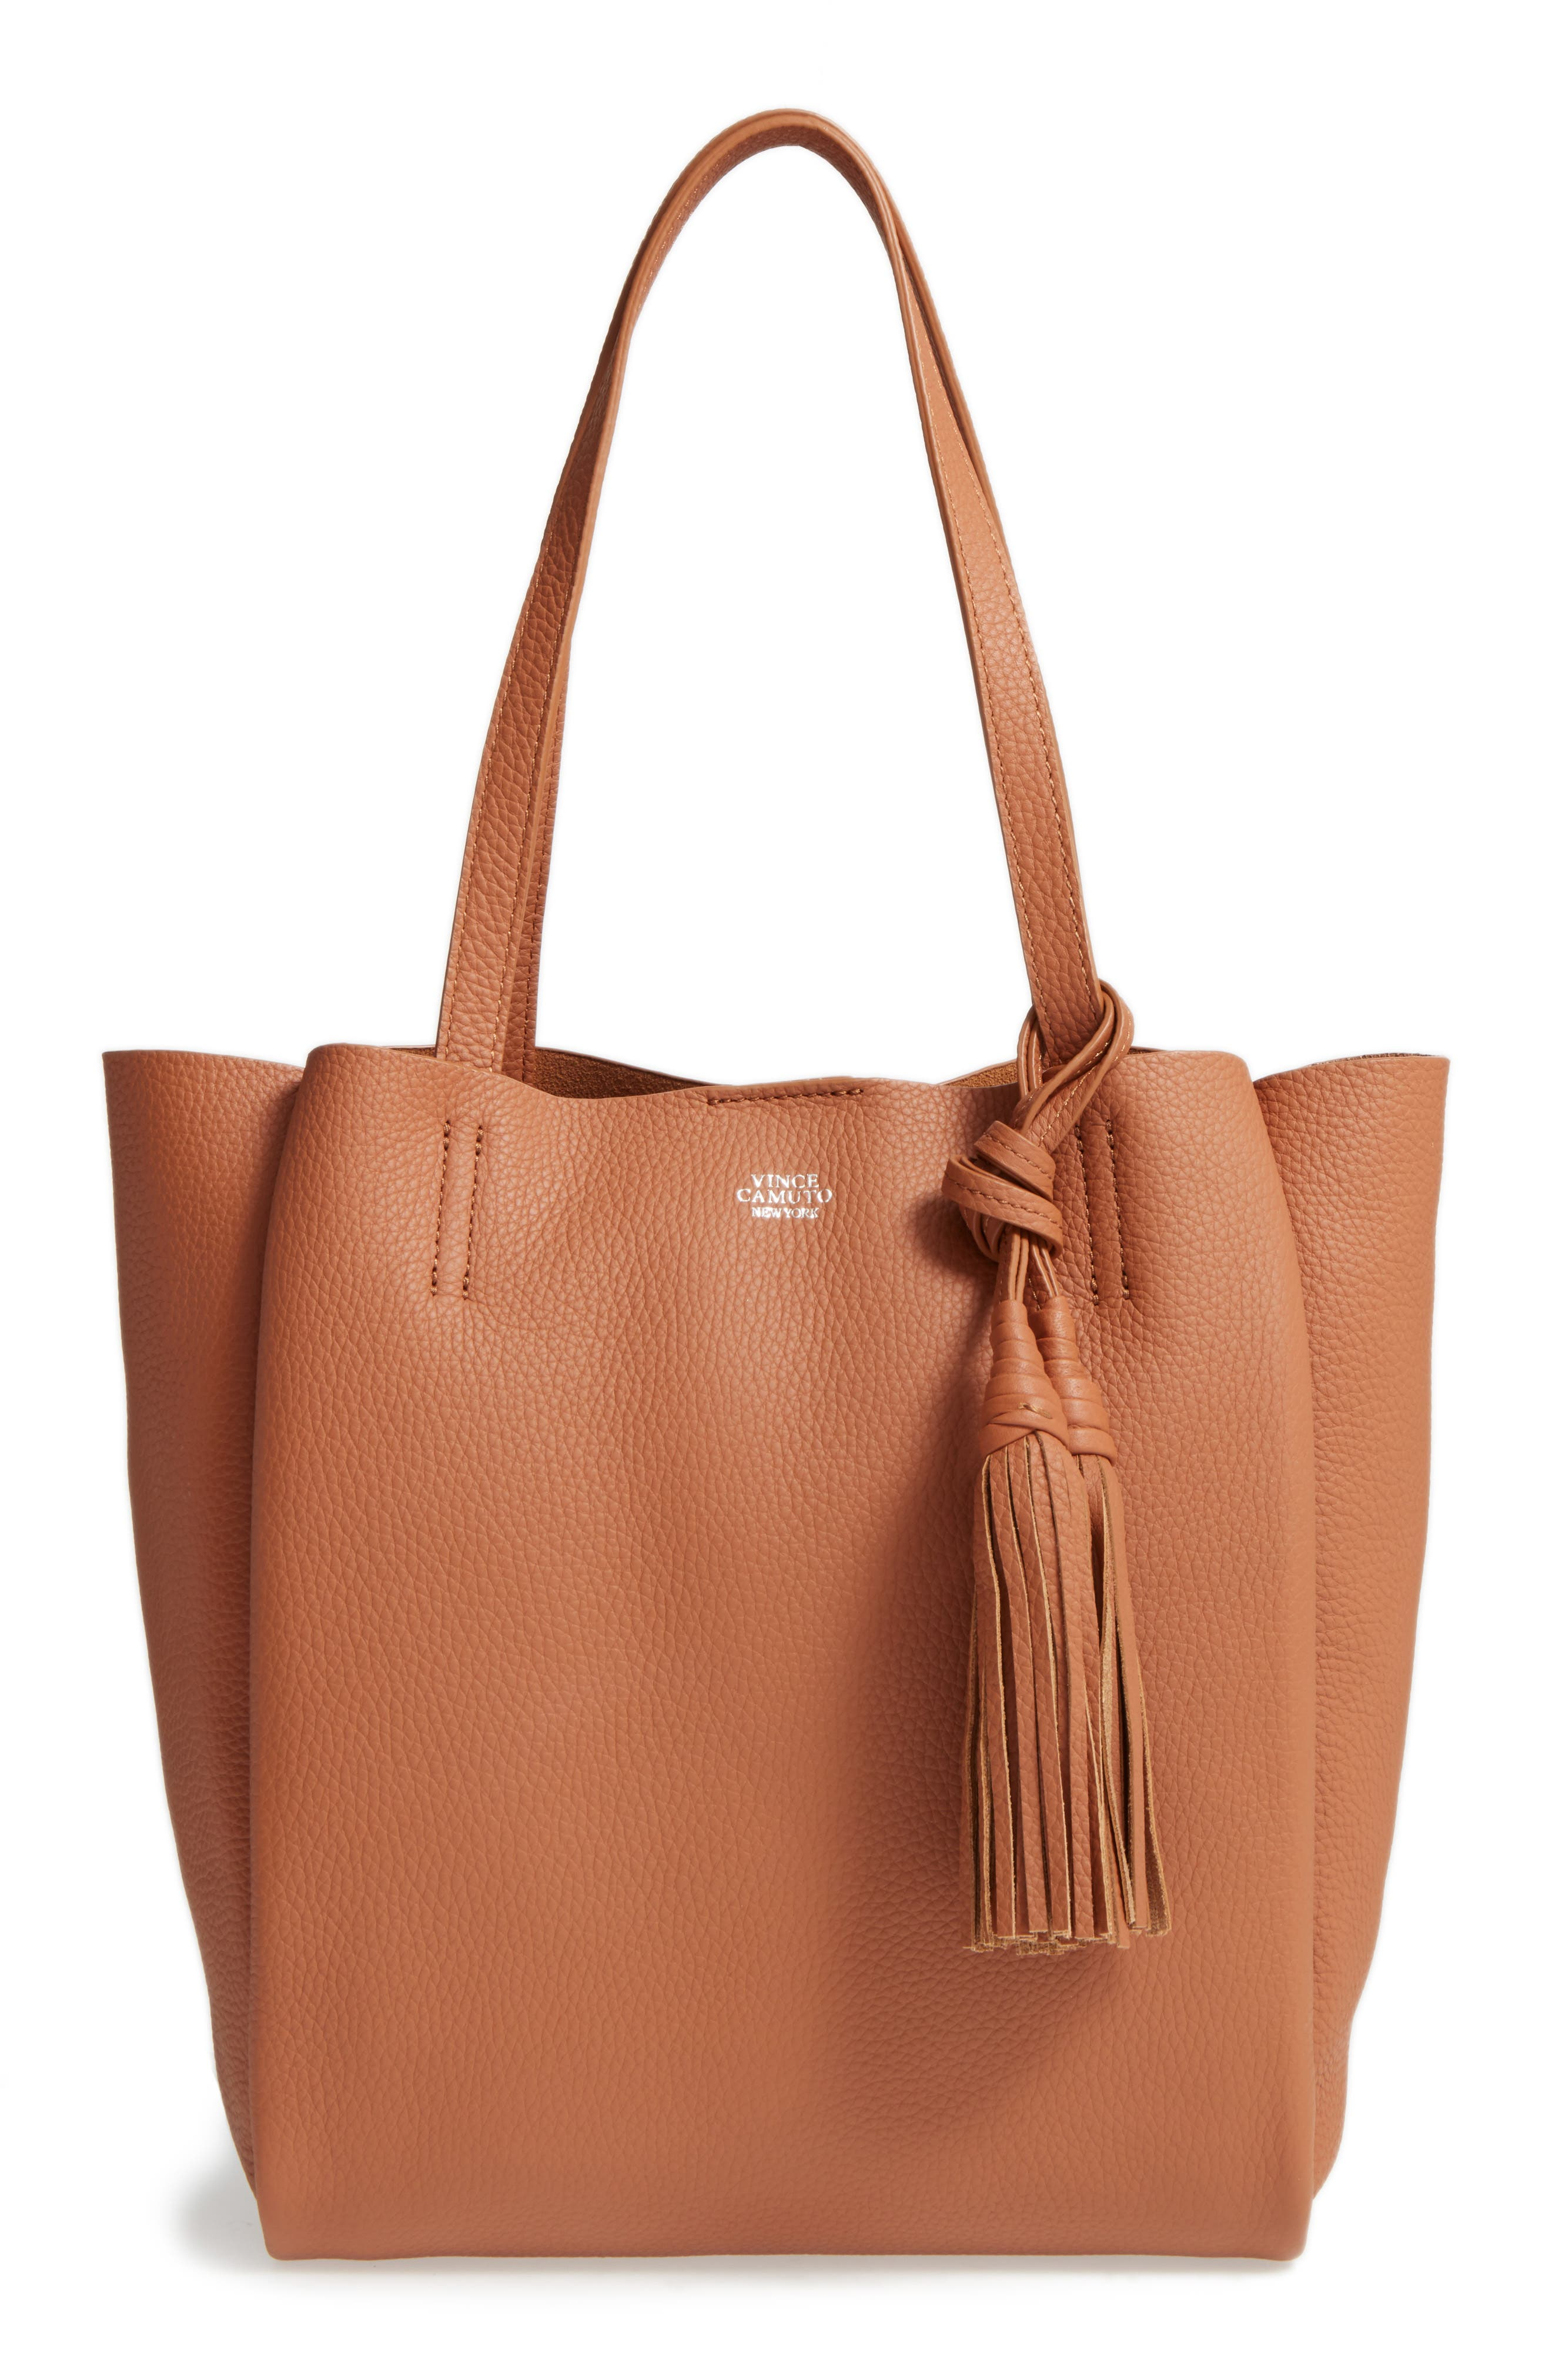 Main Image - Vince Camuto Small Taja Leather Tote with Tassel Charm